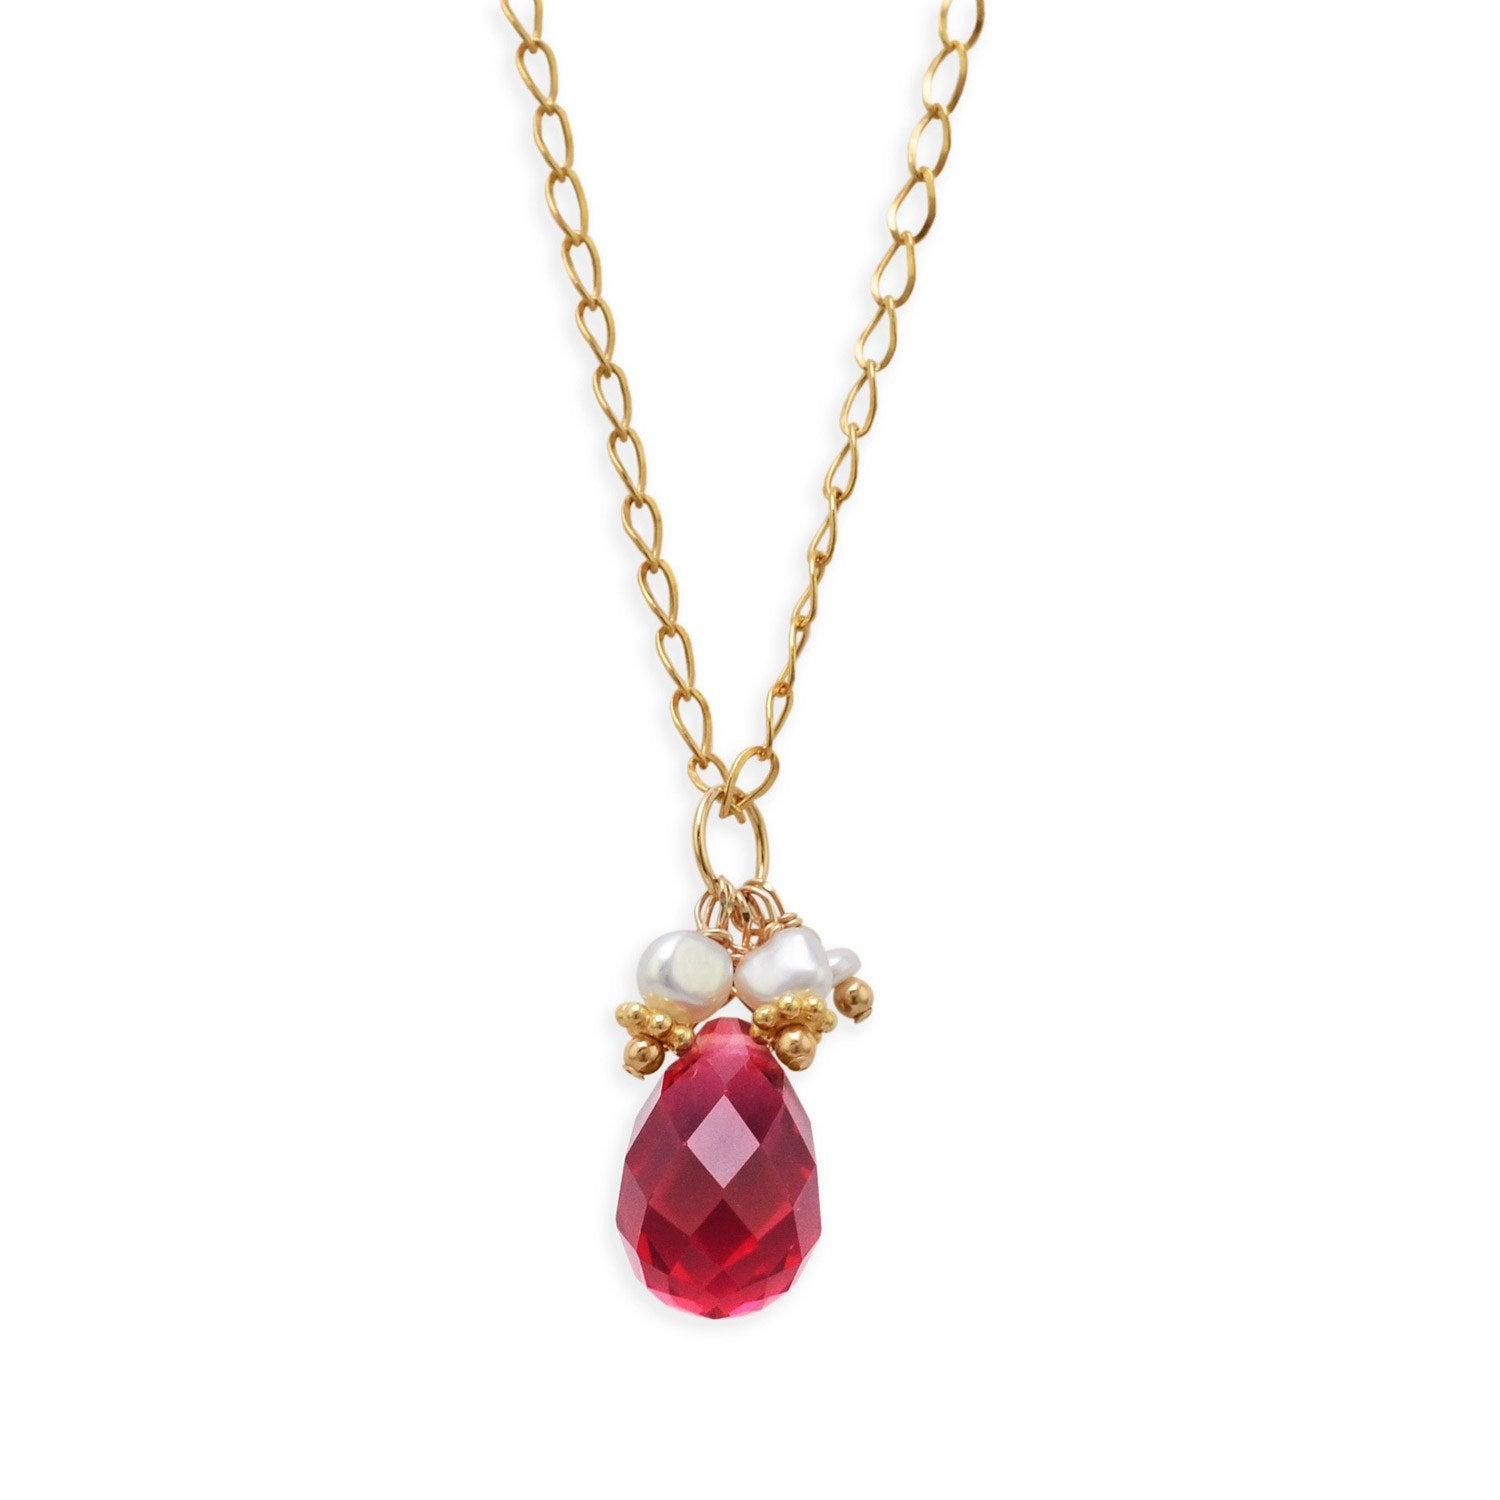 """16"""" 14/20 Gold Filled Necklace with Red Glass Briolette and Cultured Freshwater Pearls"""